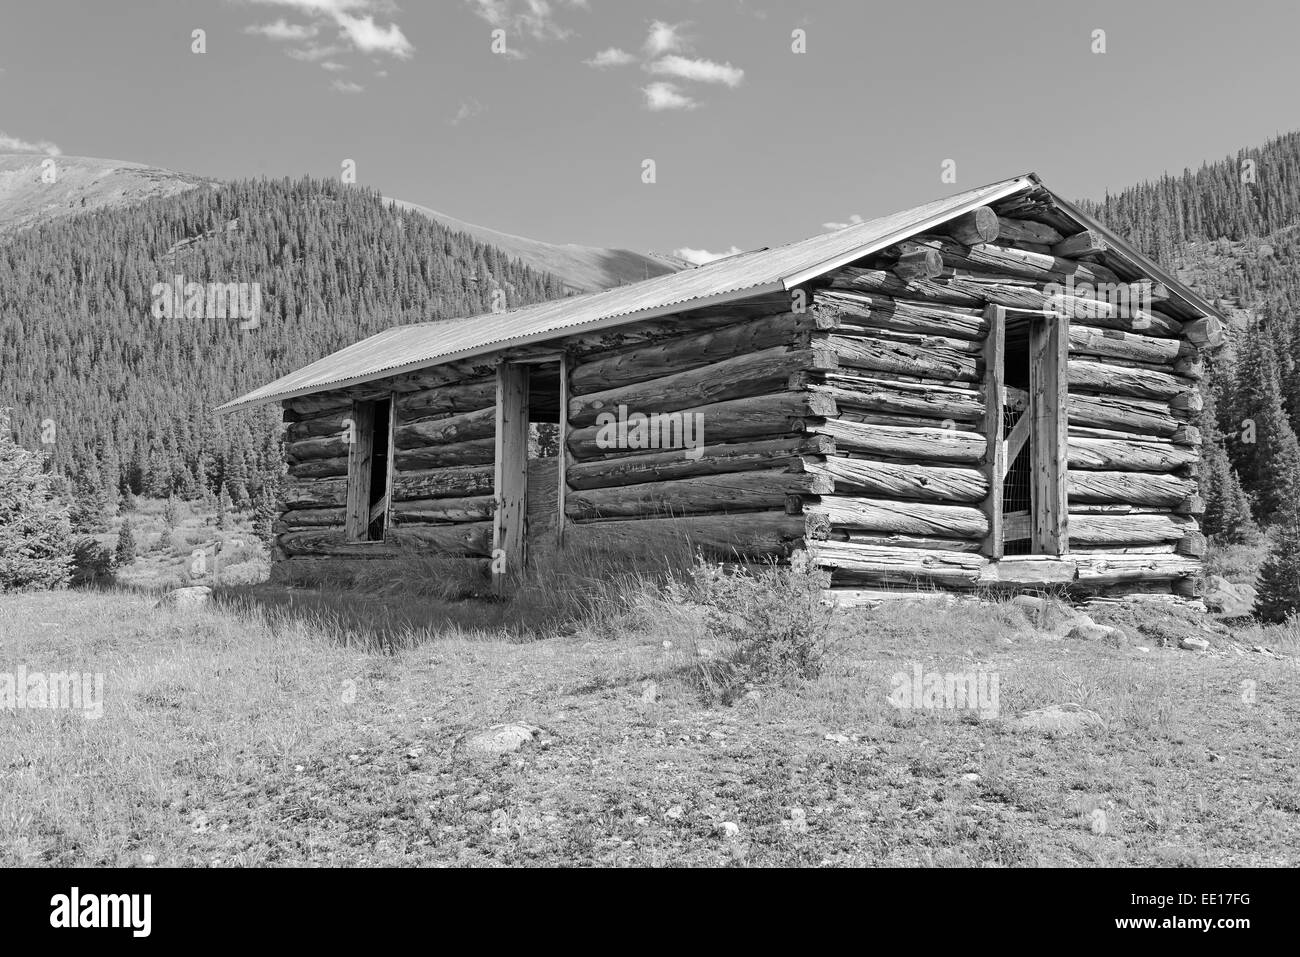 Marvelous photograph of Vintage Log Cabin In Old Mining Town Colorado Stock Photo Royalty  with #4B4B5C color and 1300x957 pixels